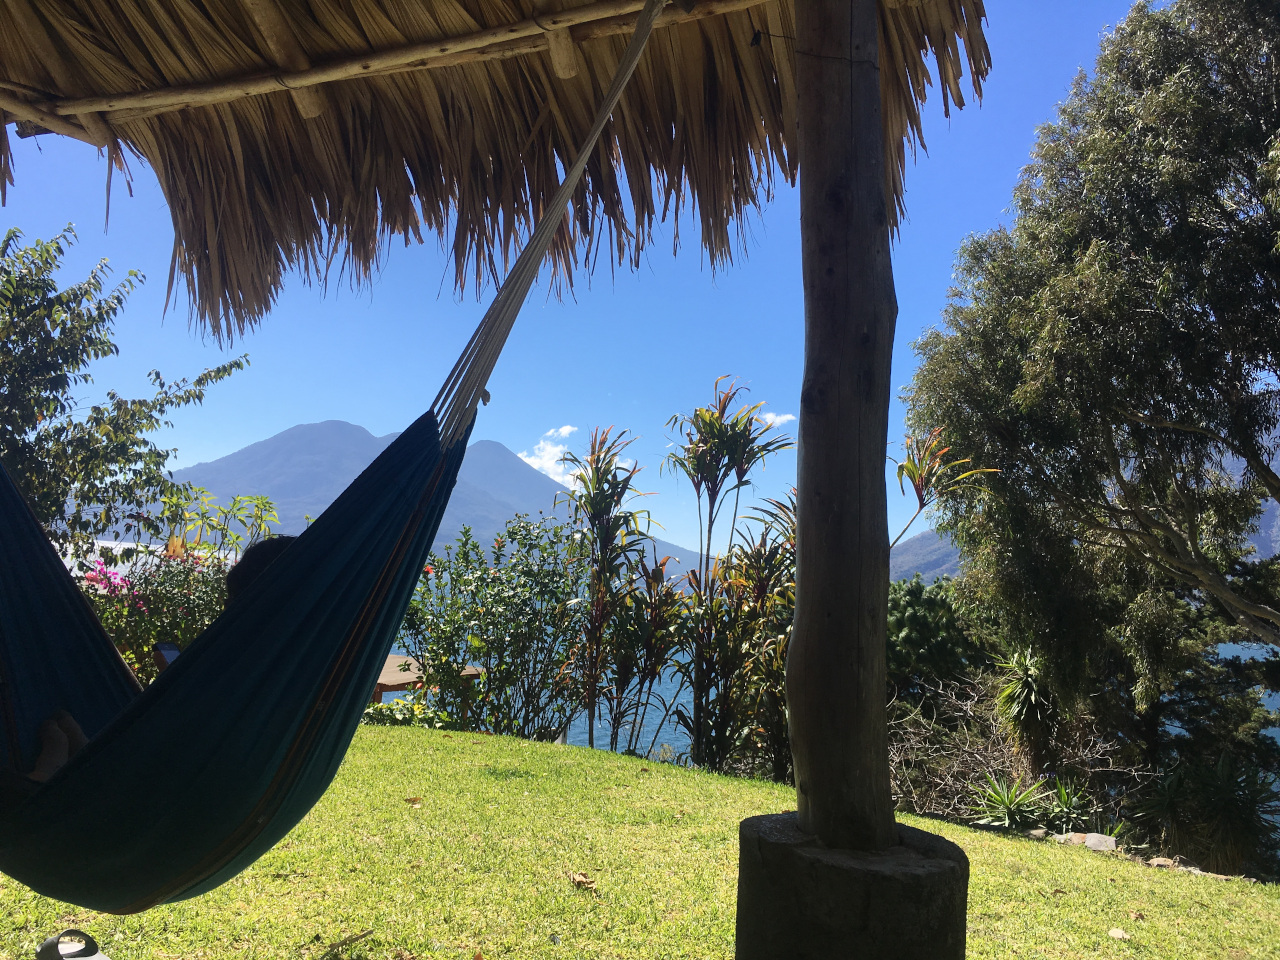 Lake Atitlan quality hammock time - the best Lake Atitlan activities and the best Lake Atitlan attractions